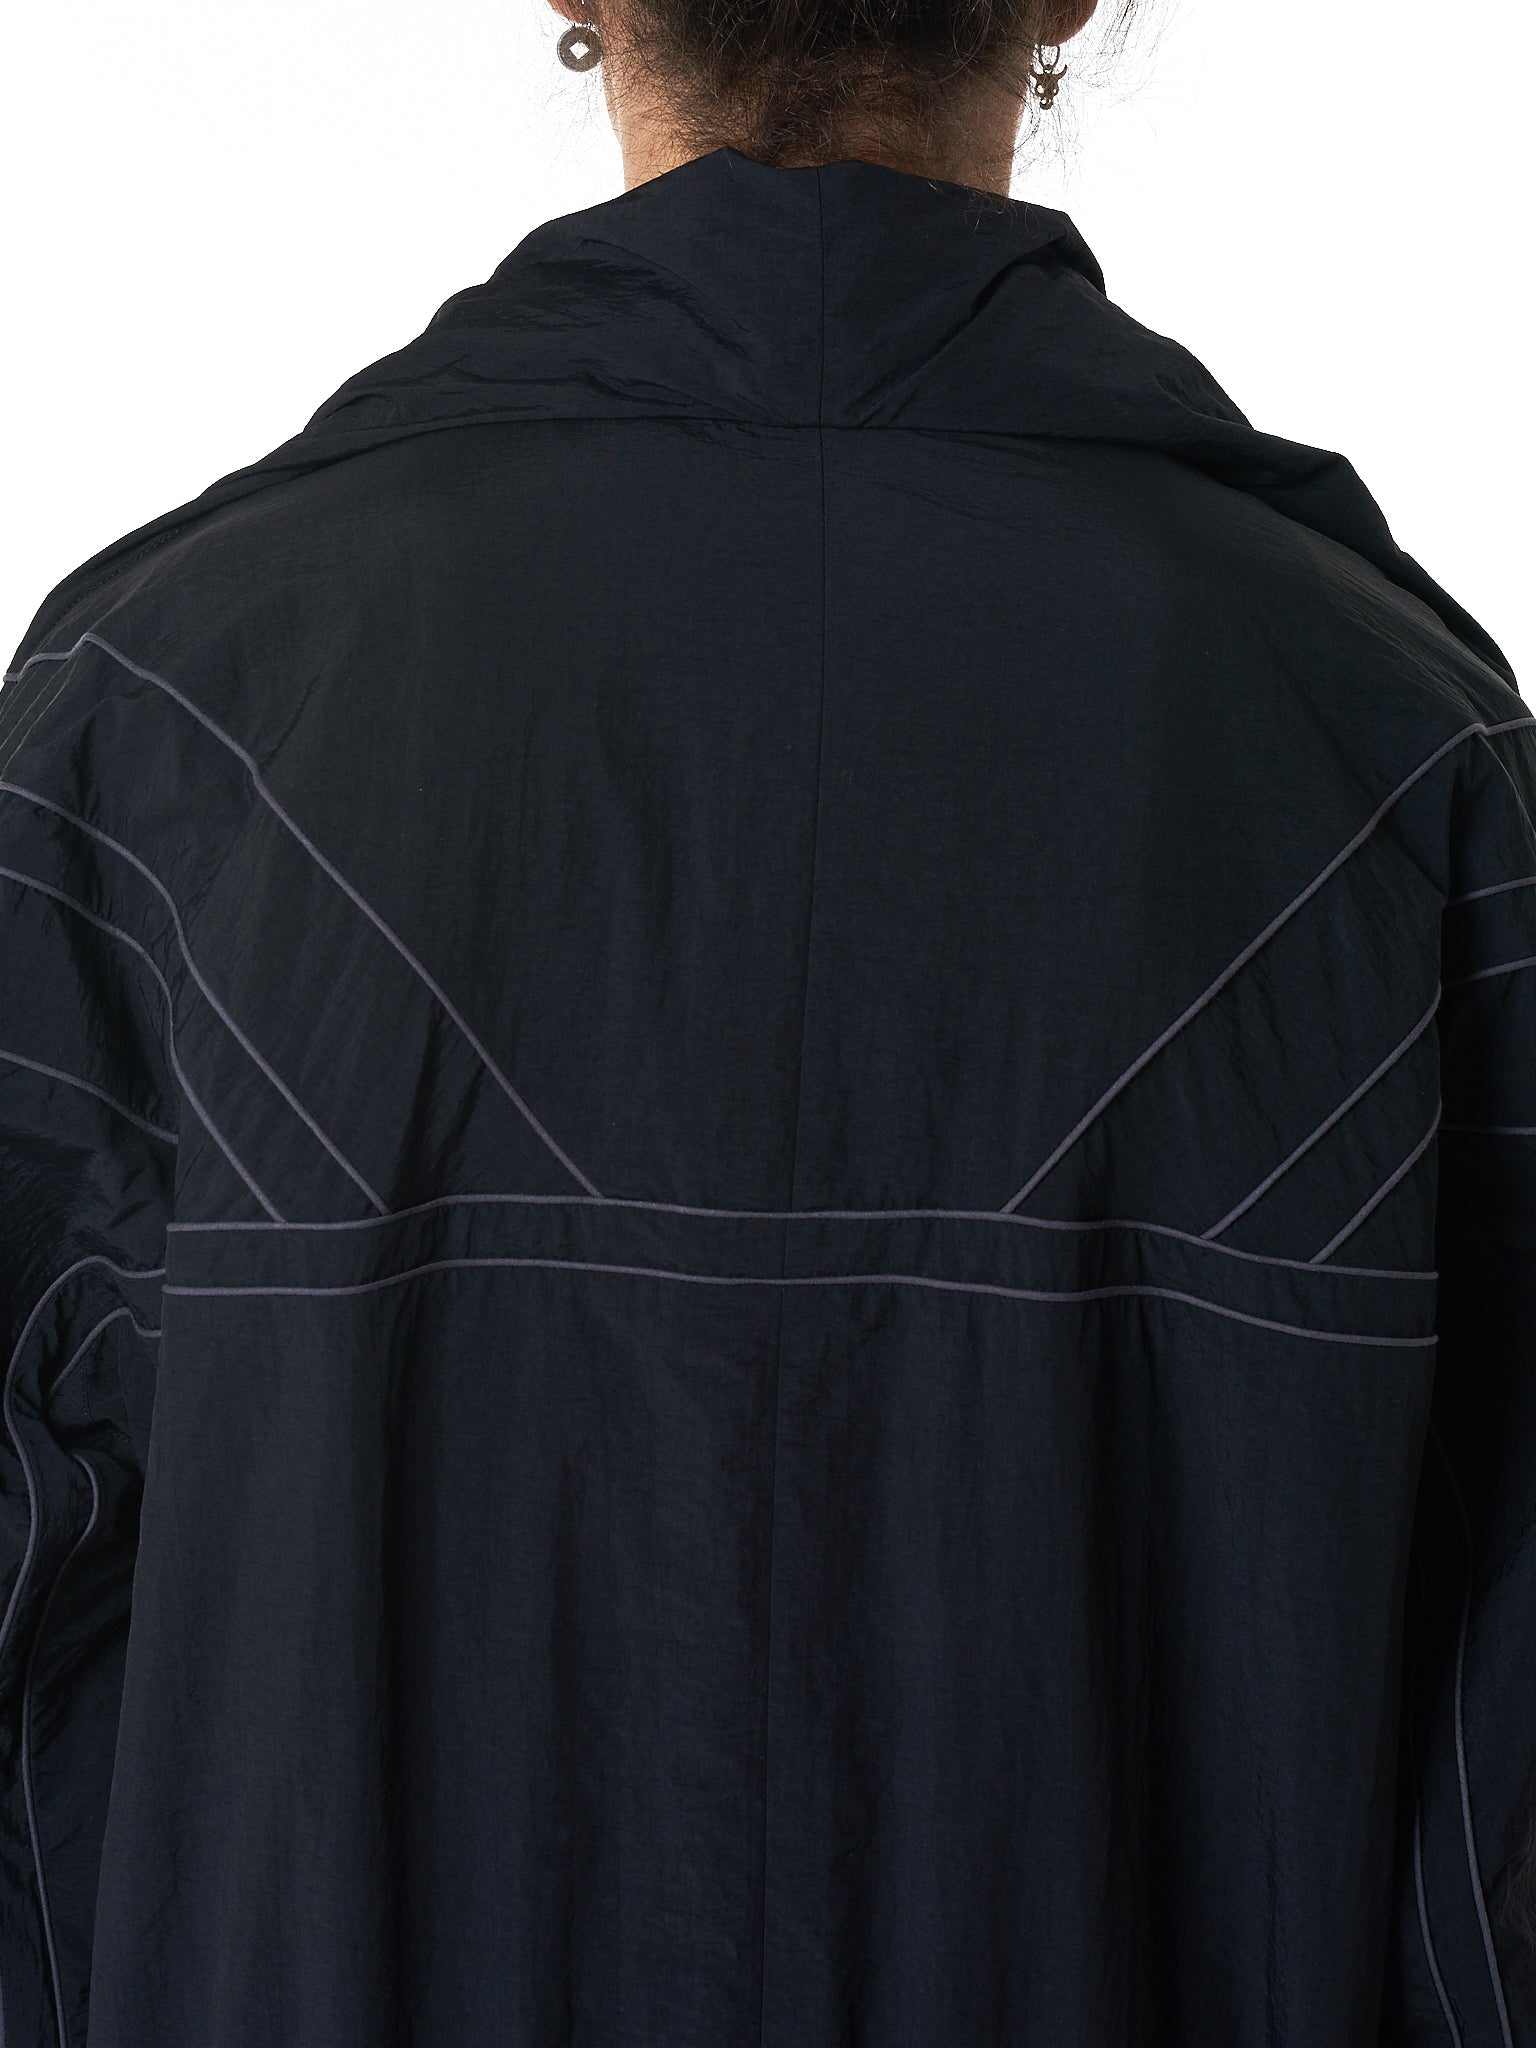 Y/Project Jacket - Hlorenzo Detail 1